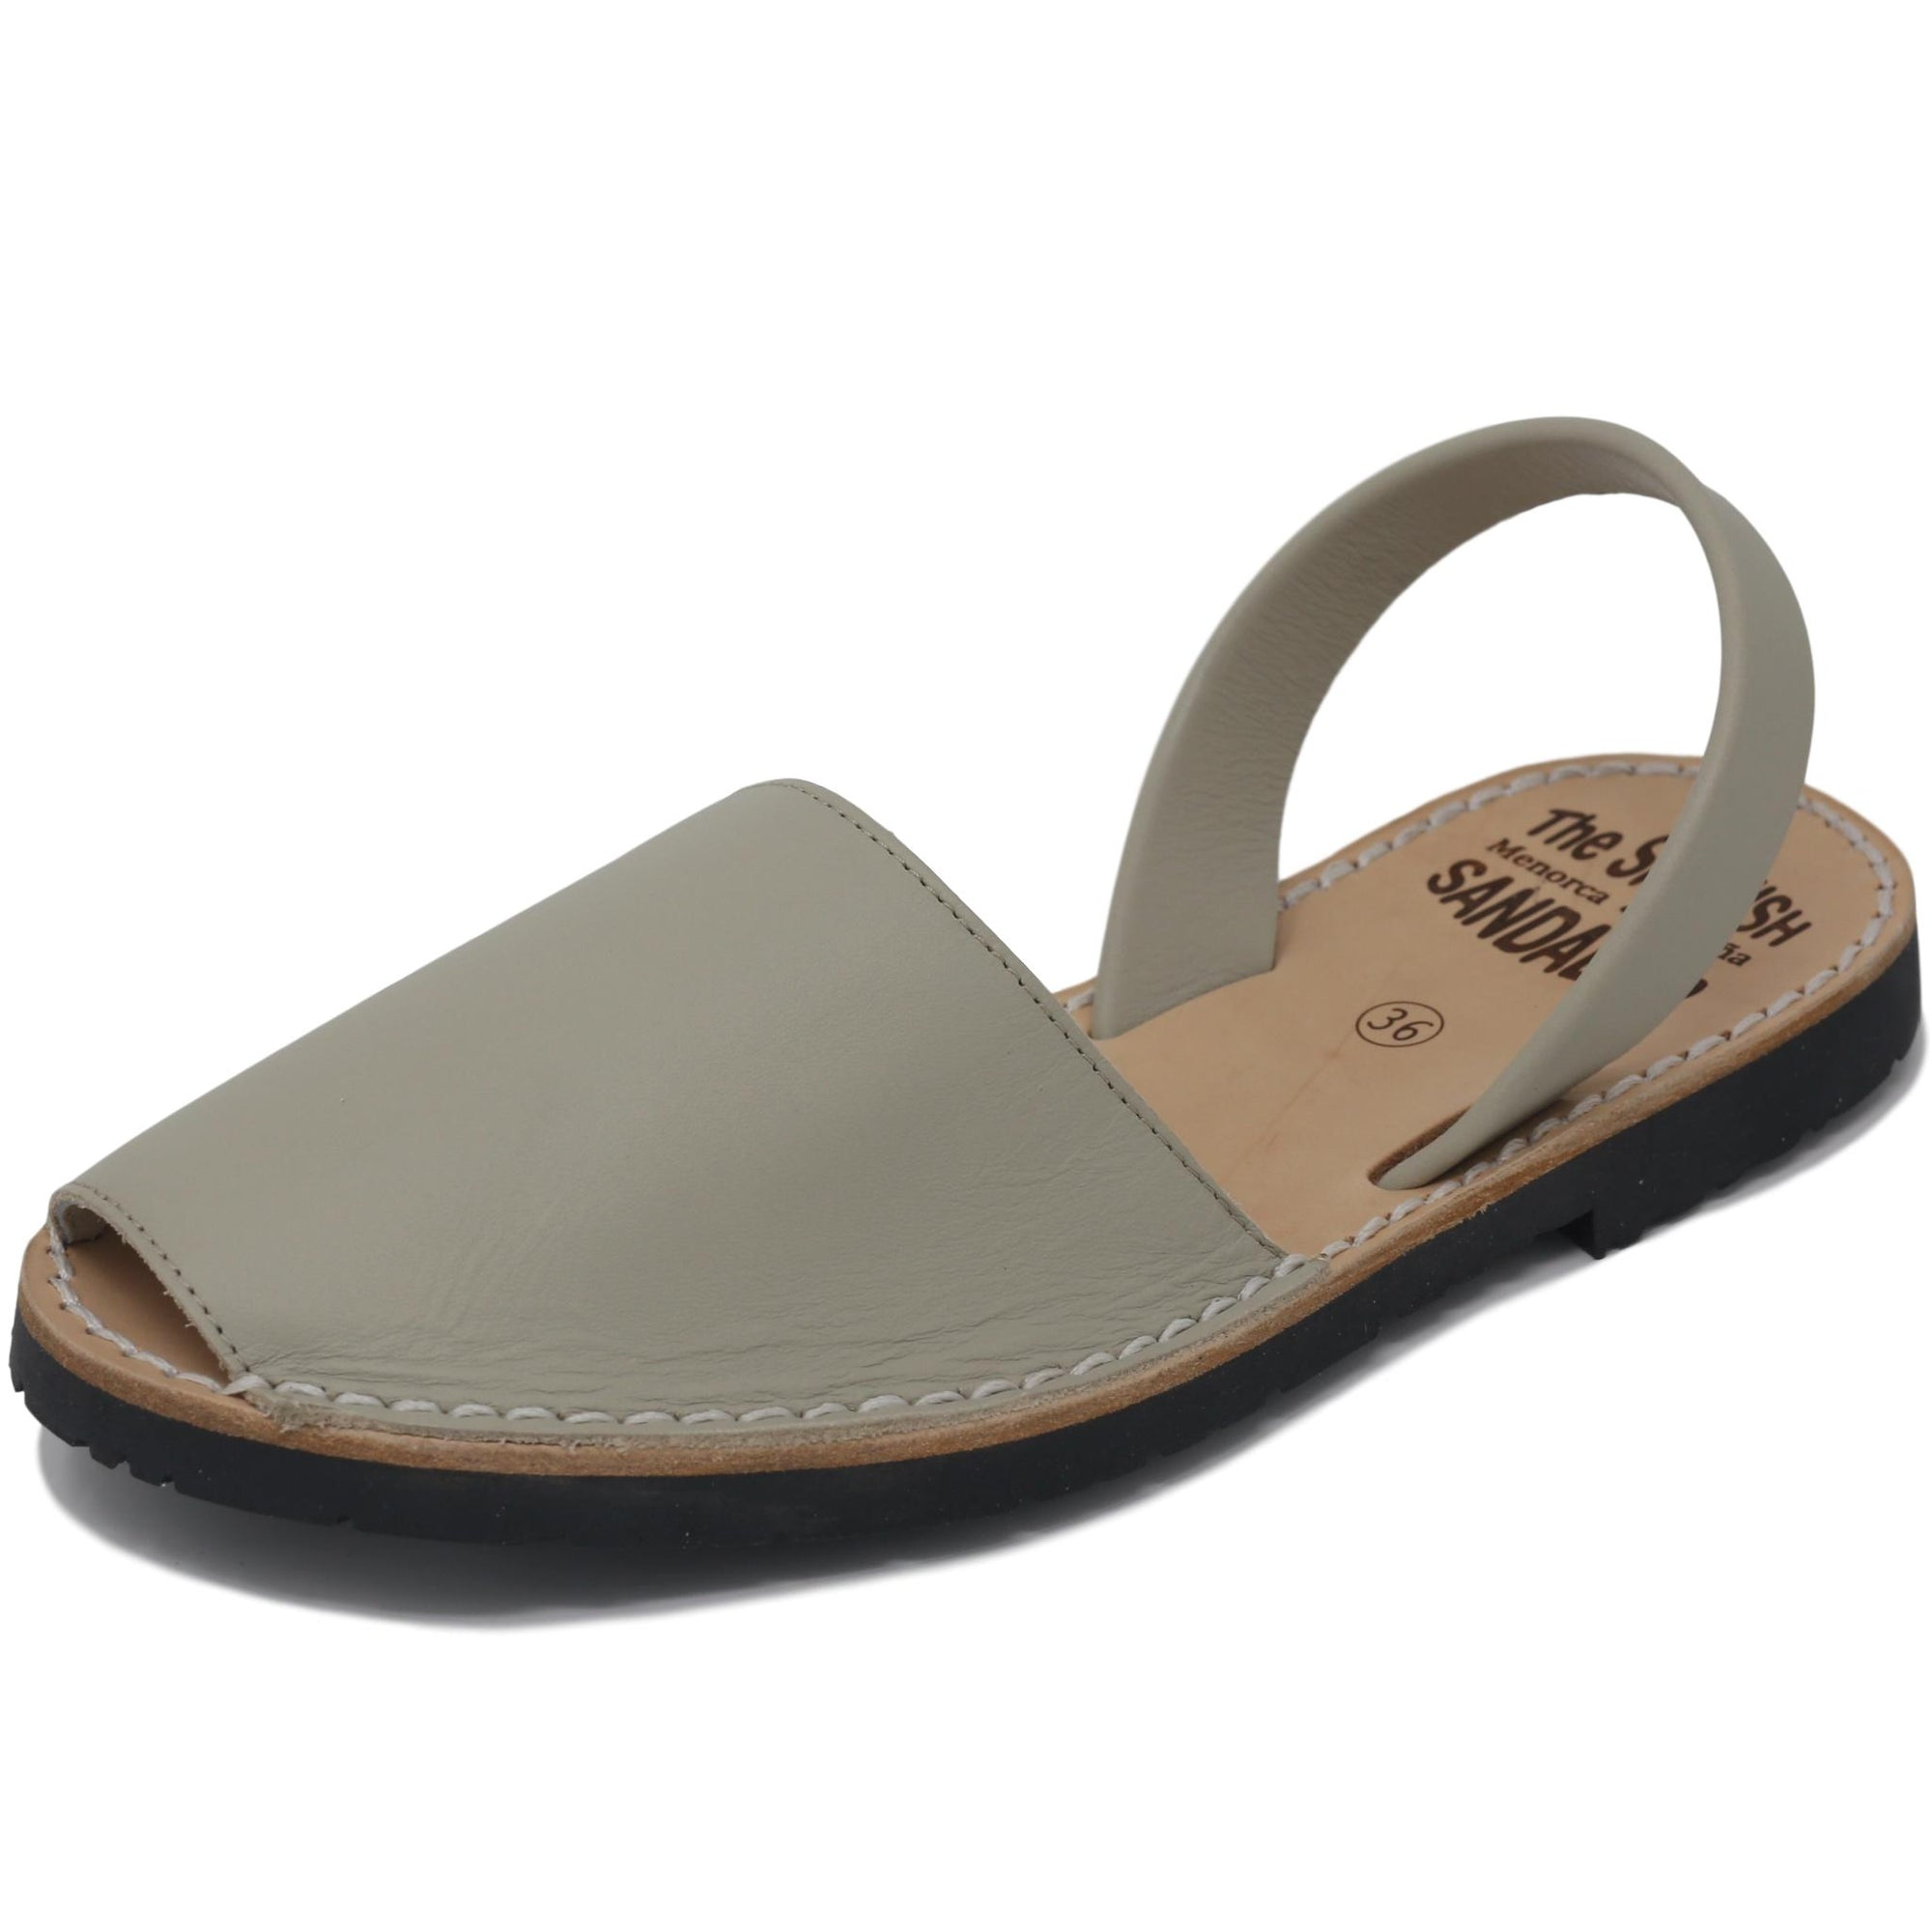 Classic beige sandals - diagonal view